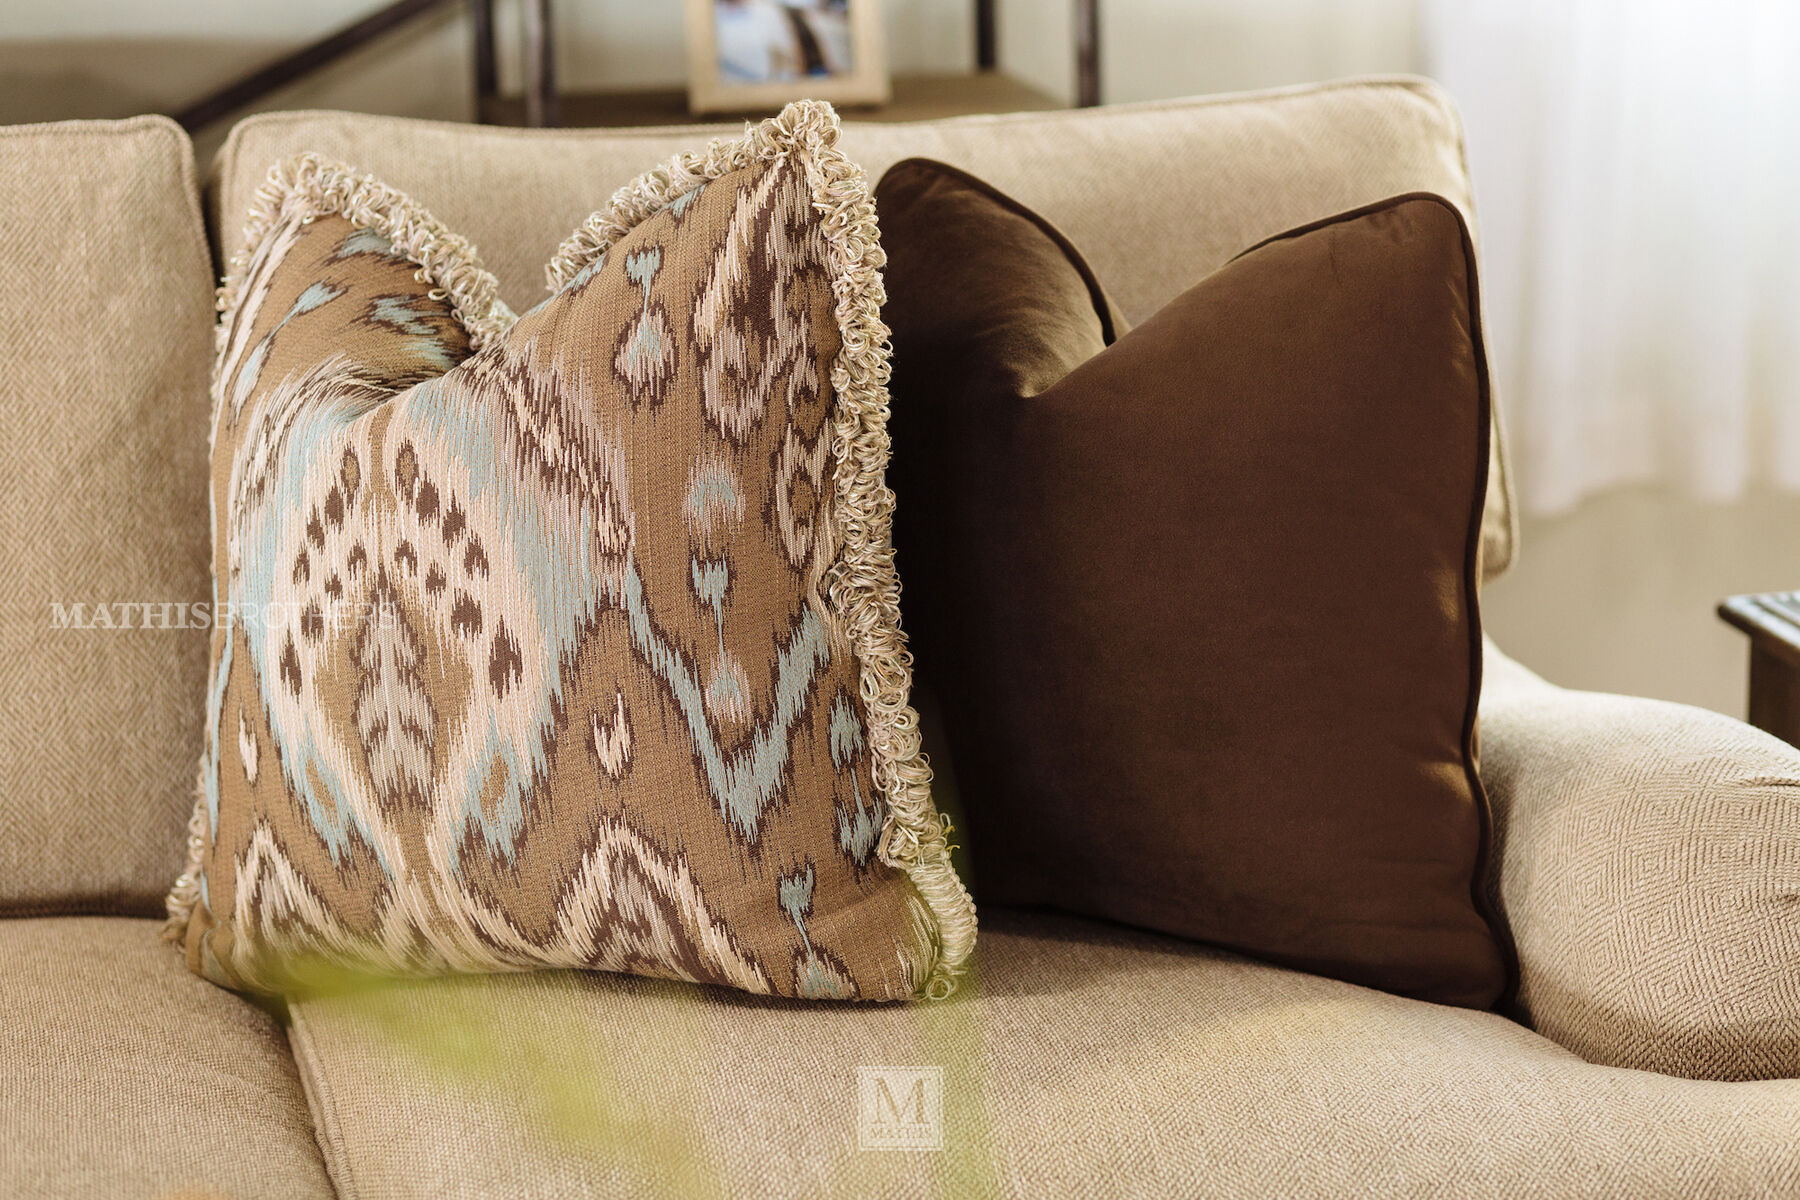 bernhardt walsh sofa cushion covers for dark brown casual 96 5 quot textured in beige mathis brothers